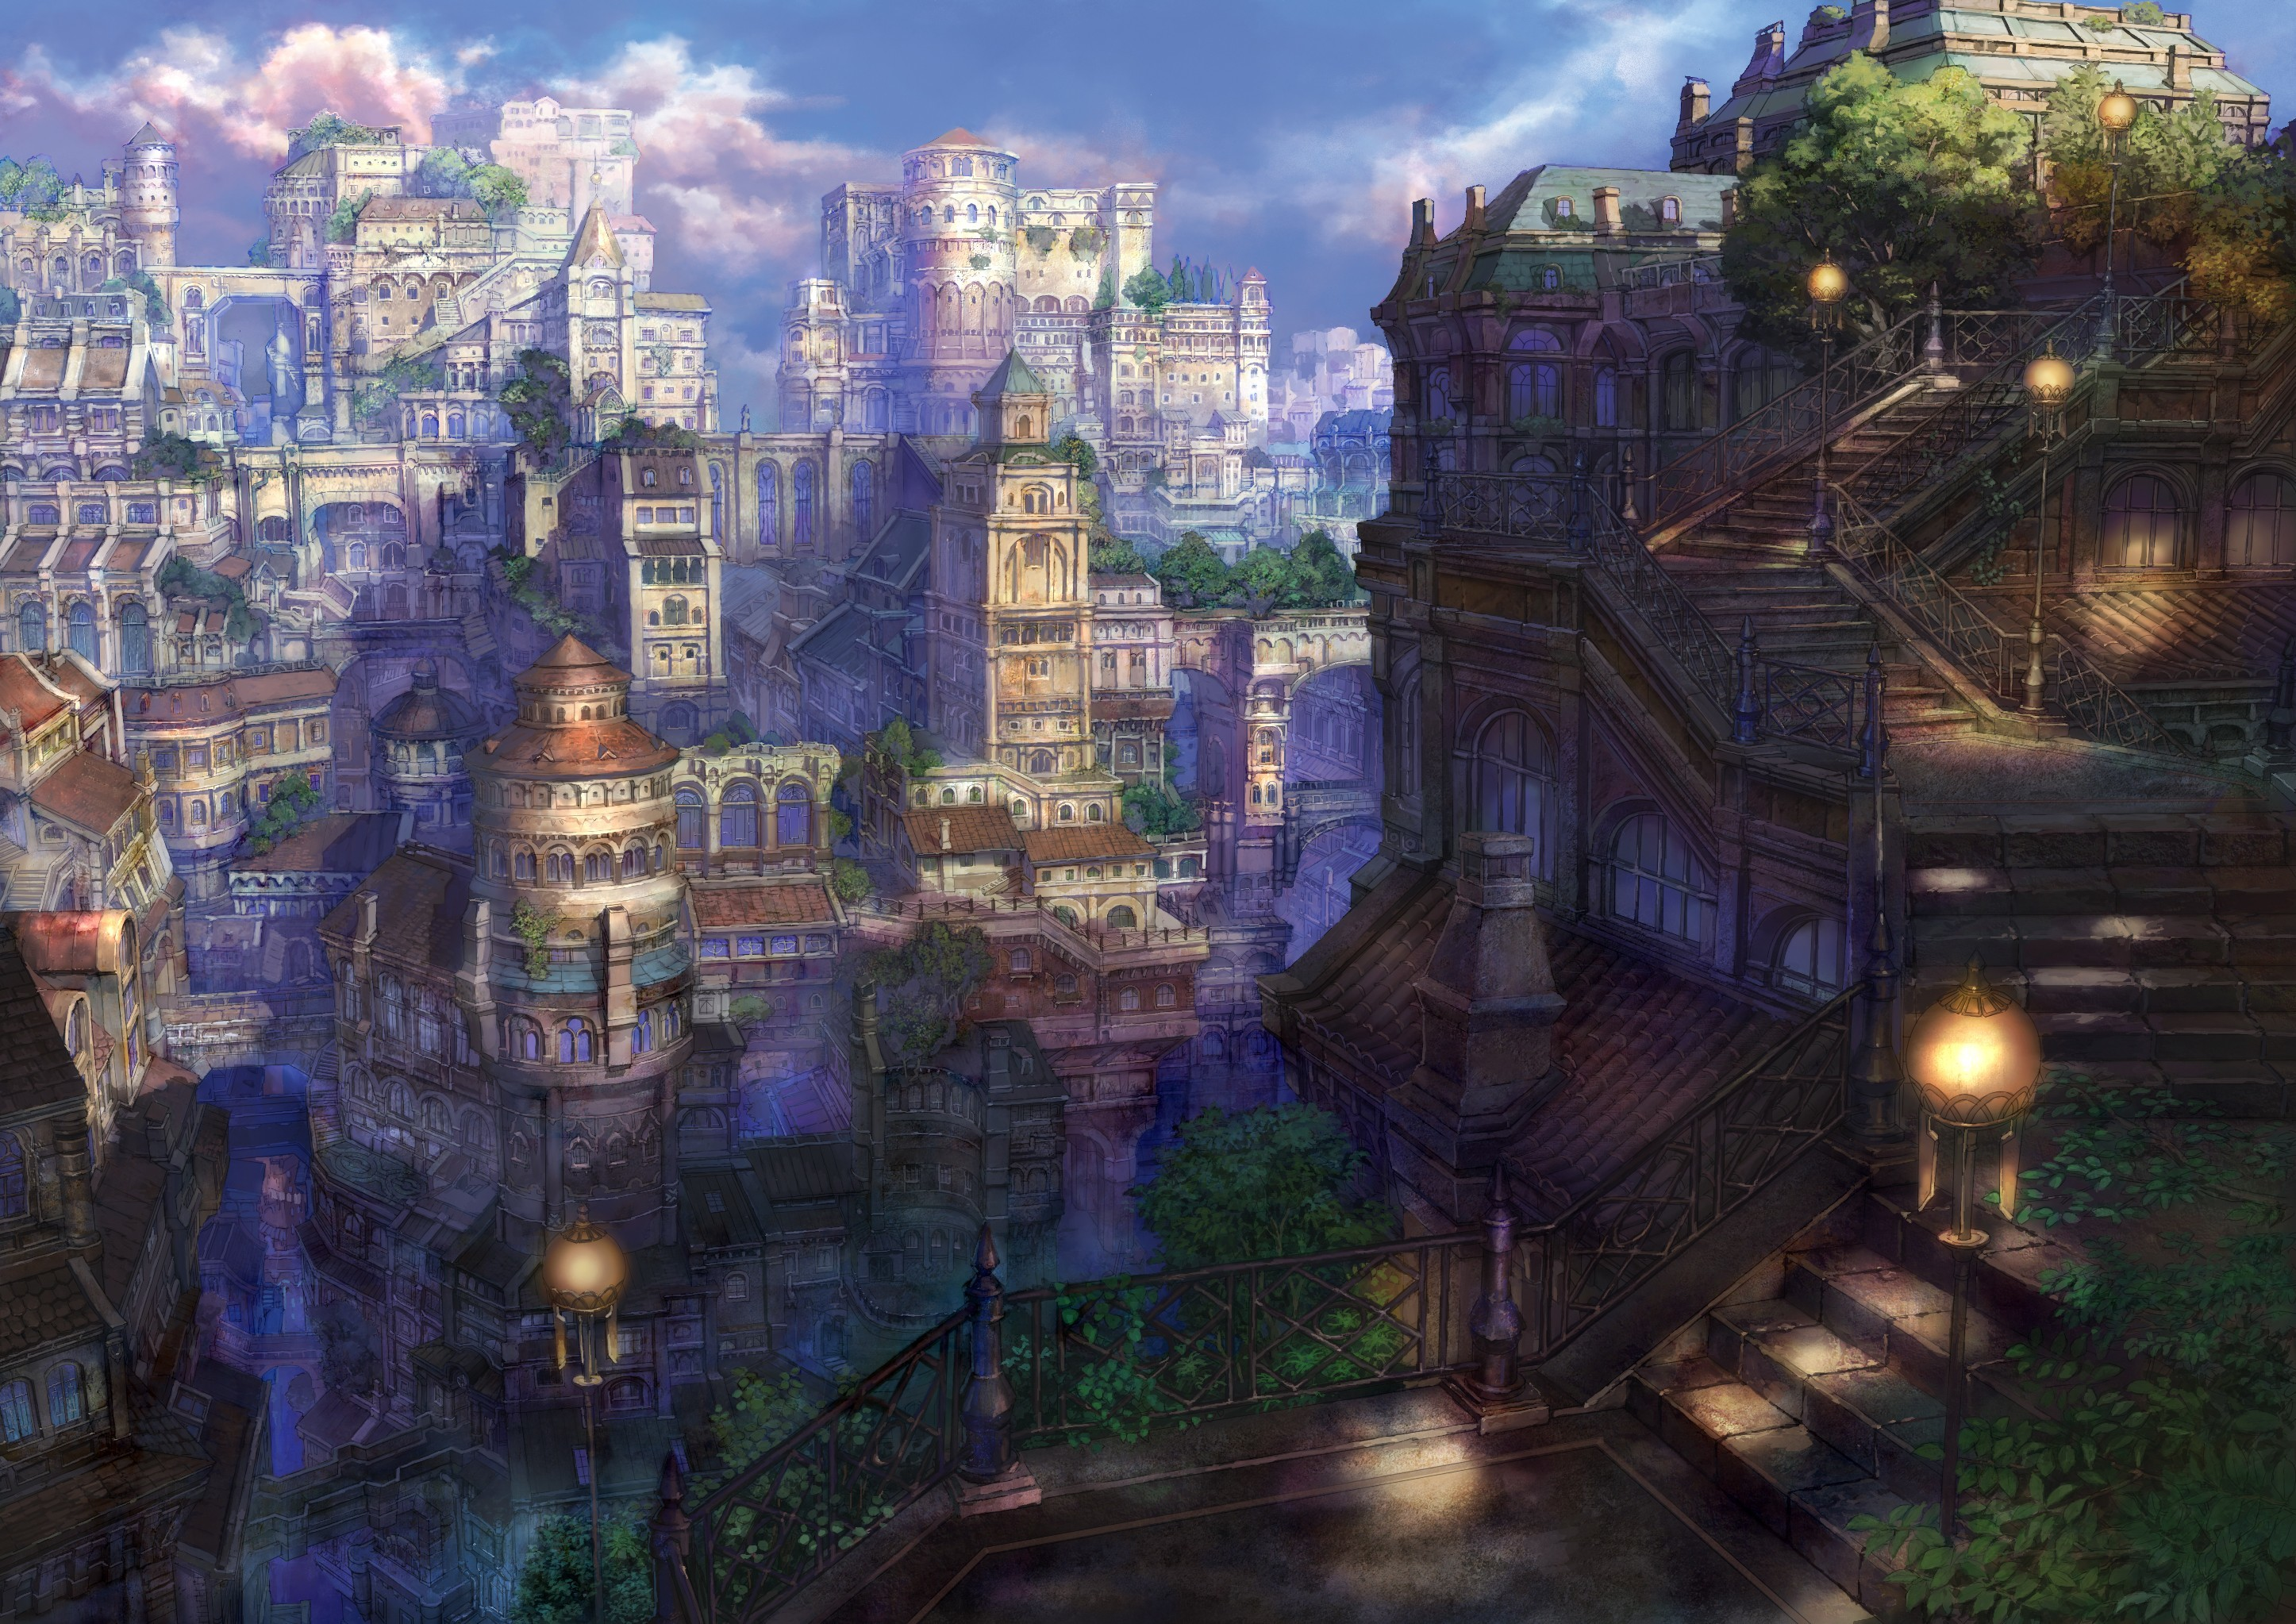 cityscapes artwork Anime munashichi HD Wallpaper